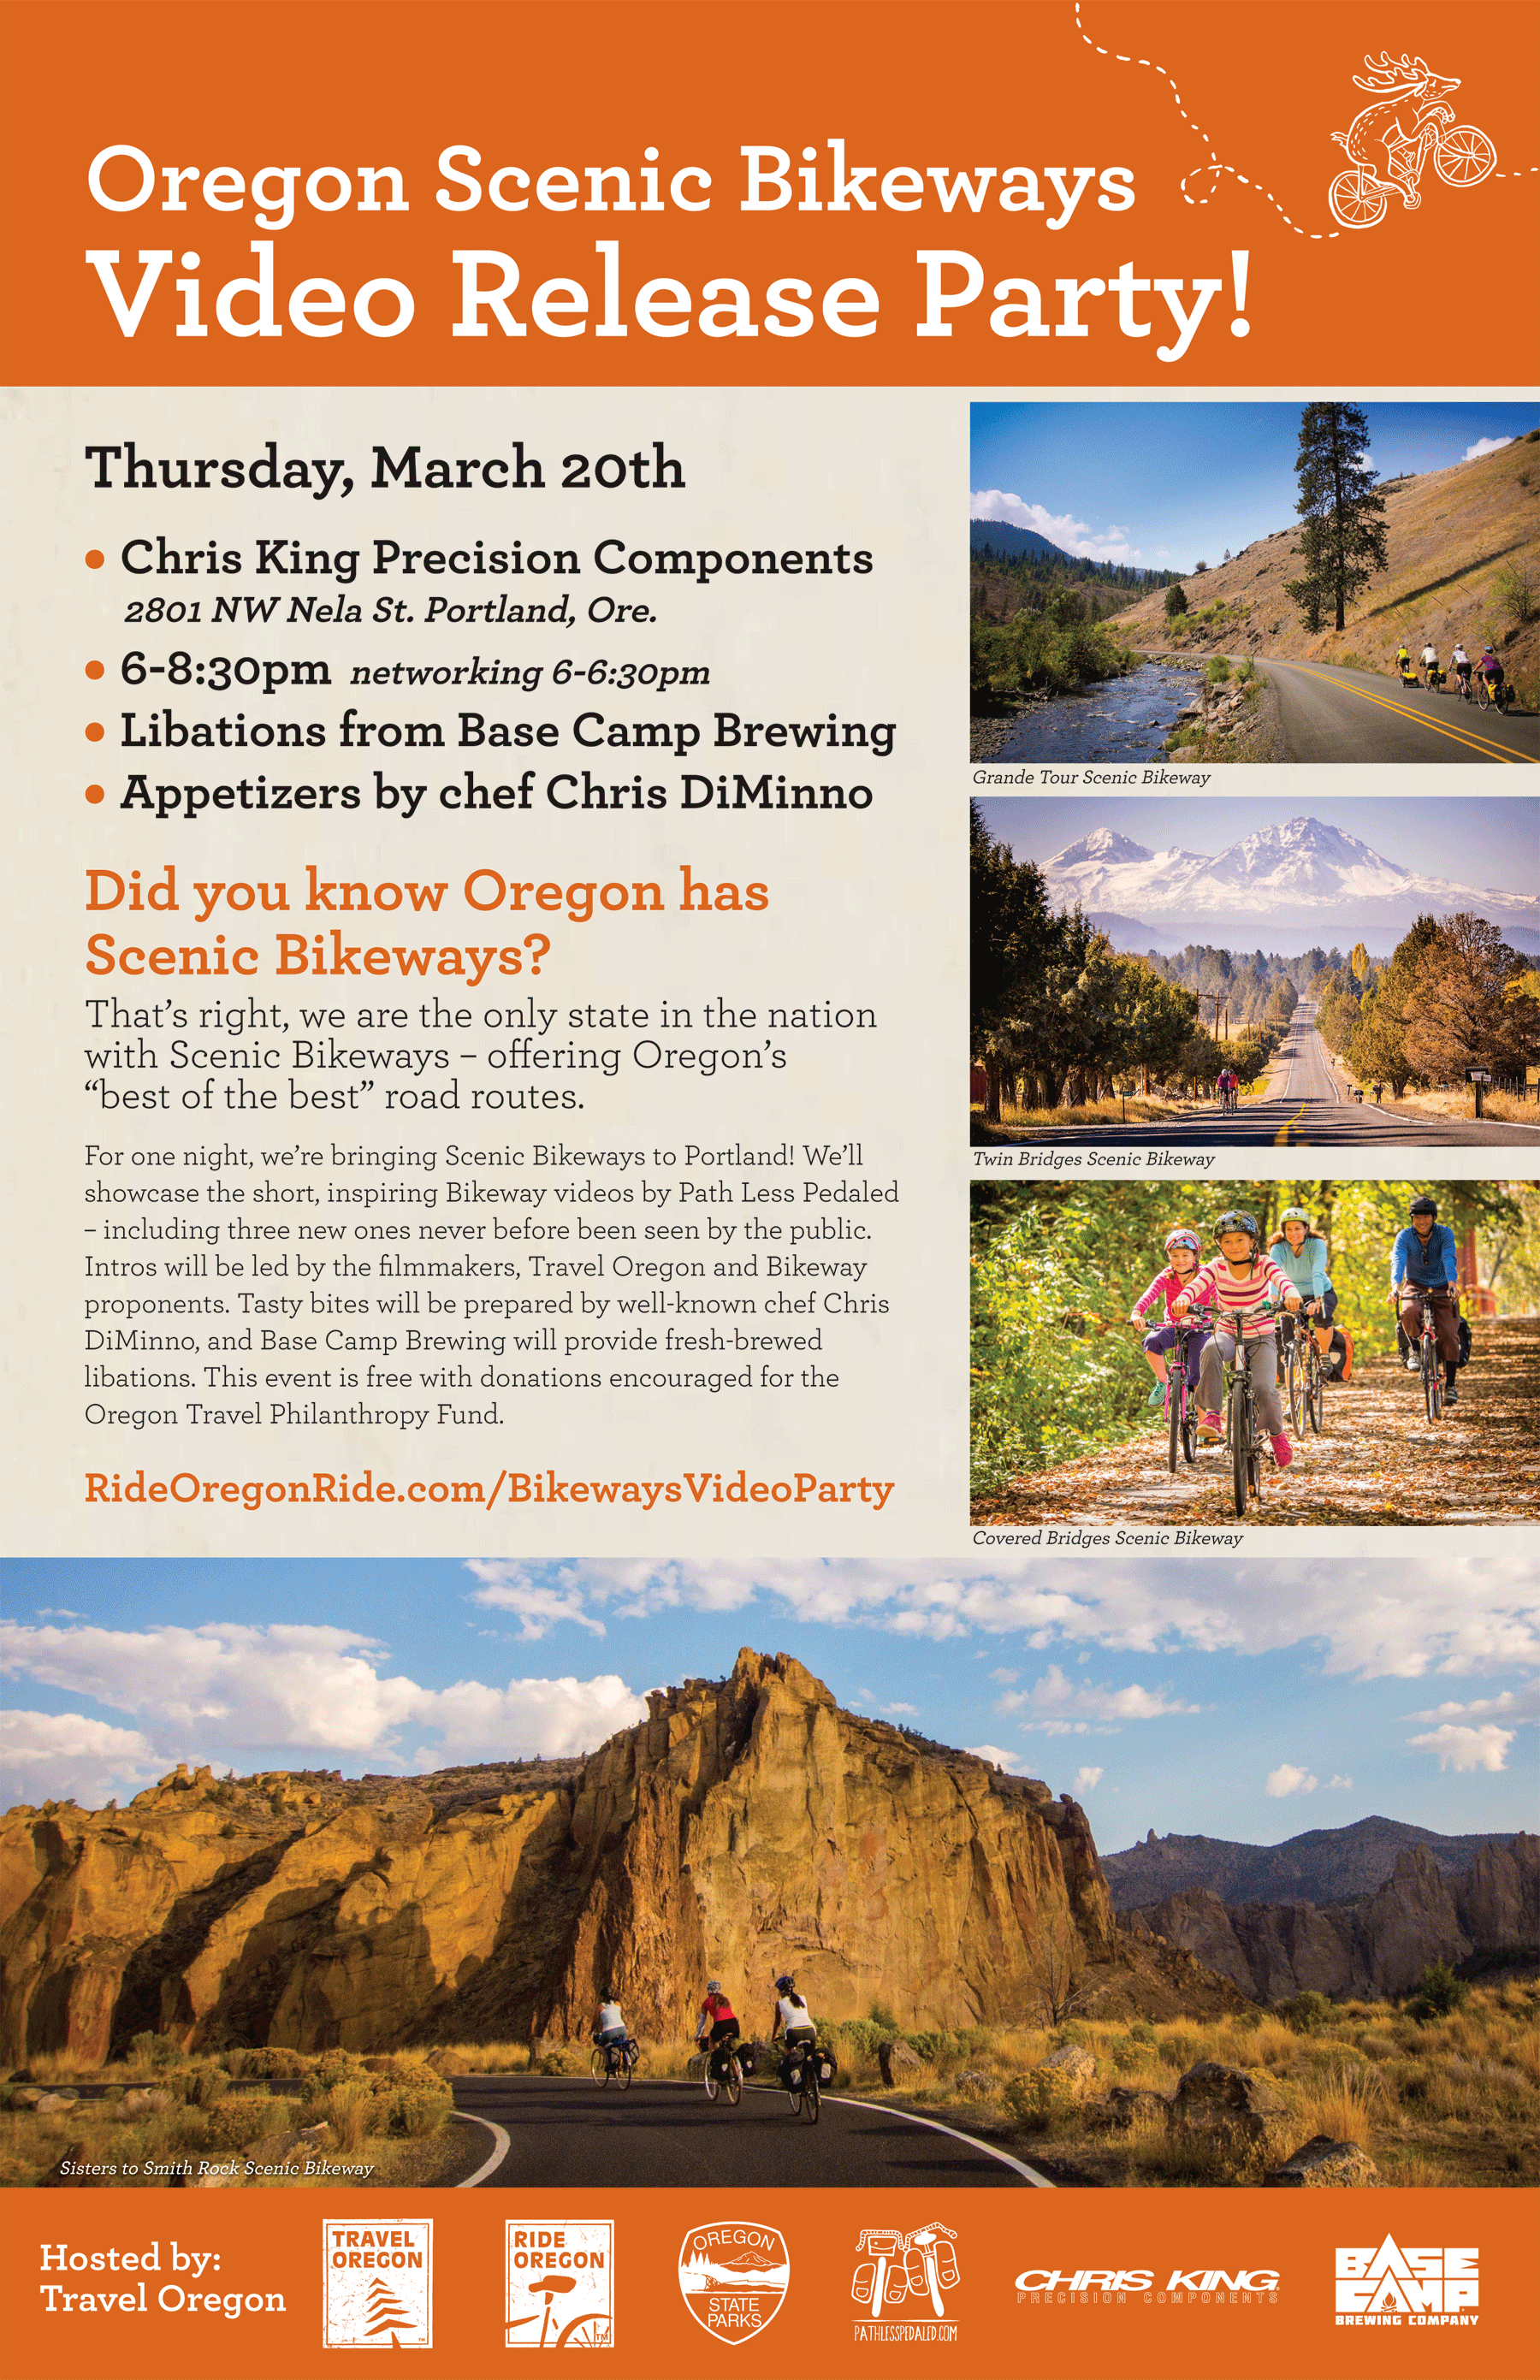 Travel Oregon video release party!